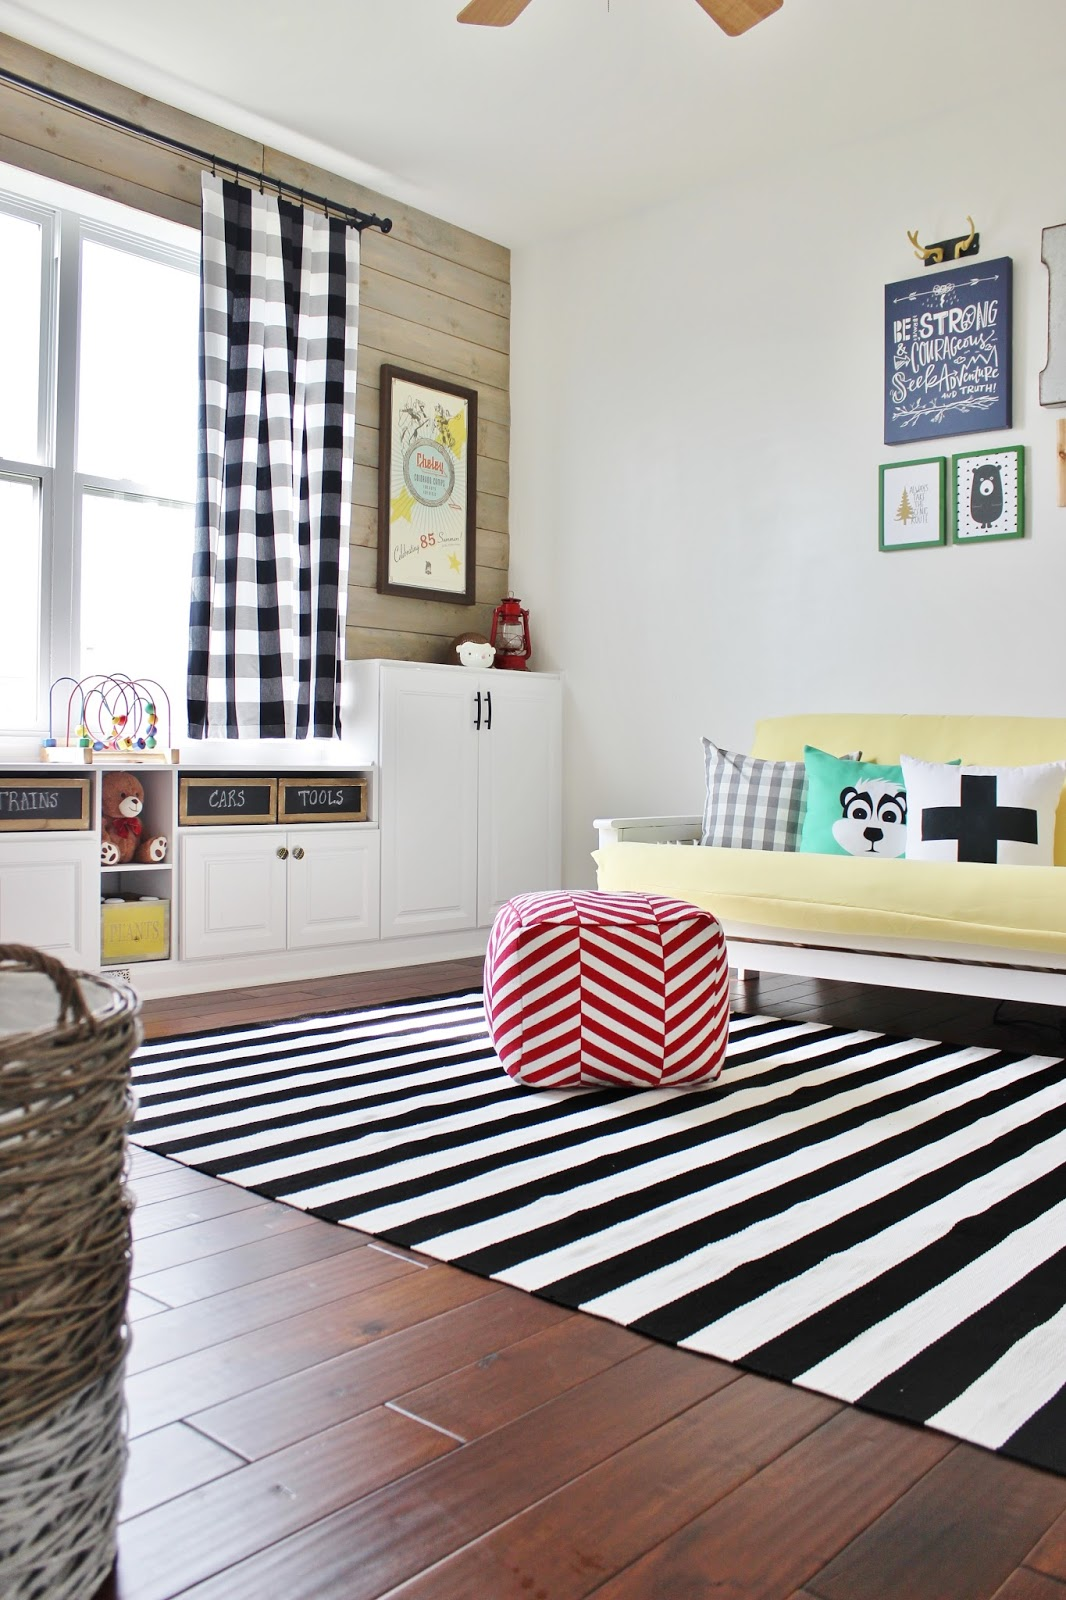 Playroom Makeover with Built-In Cabinets for Storage | Remodelaholic ...